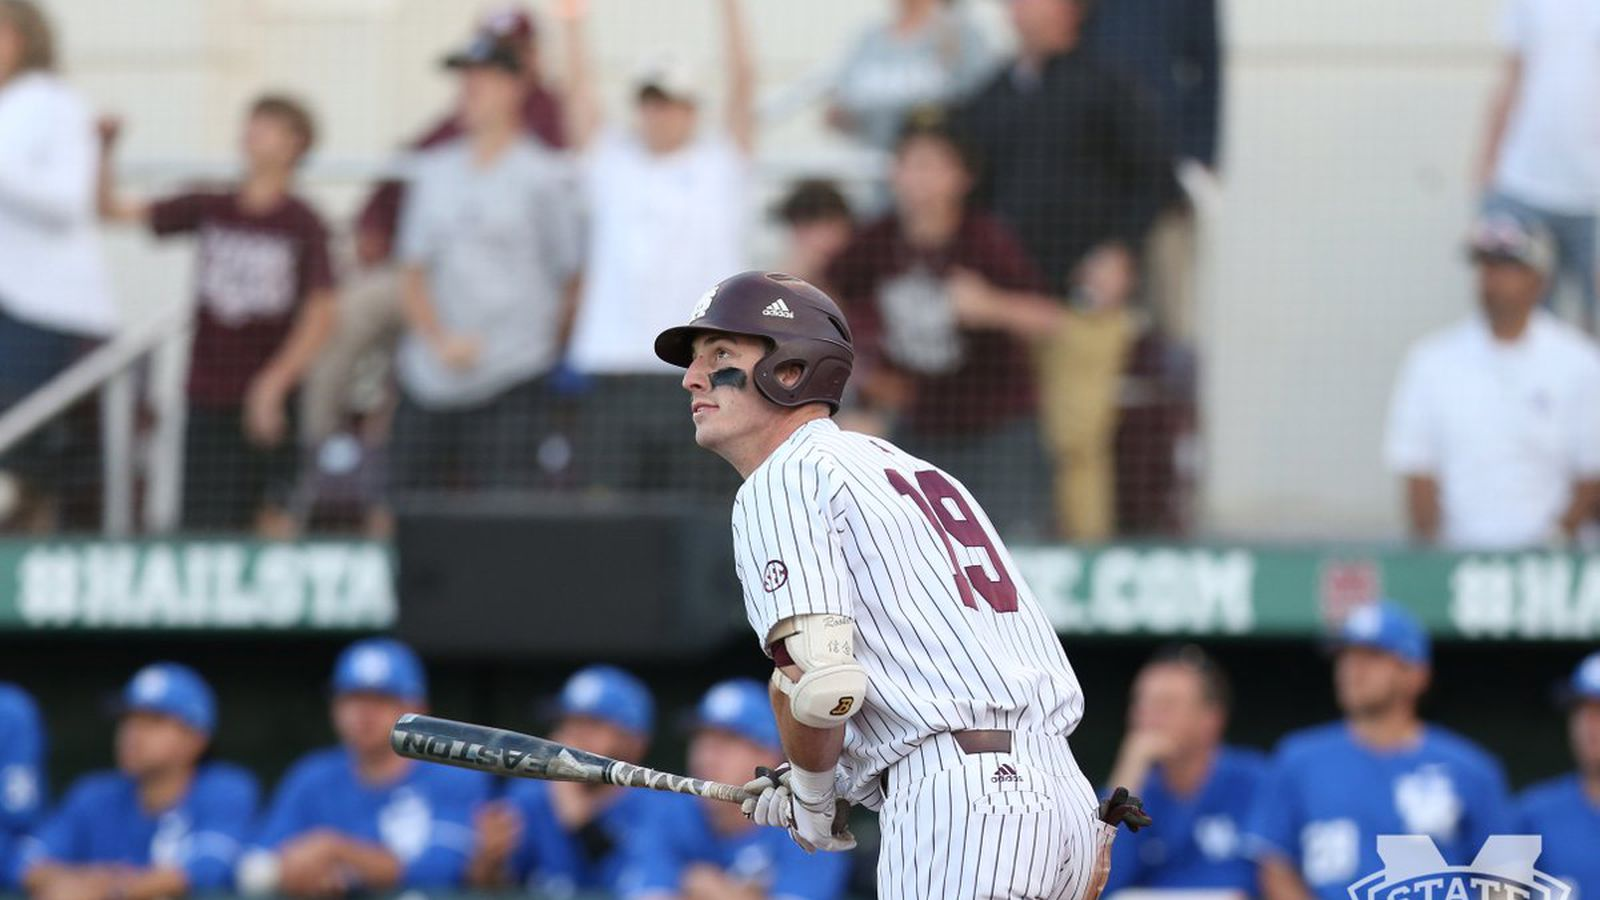 Brent_rooker___twitter_search.0